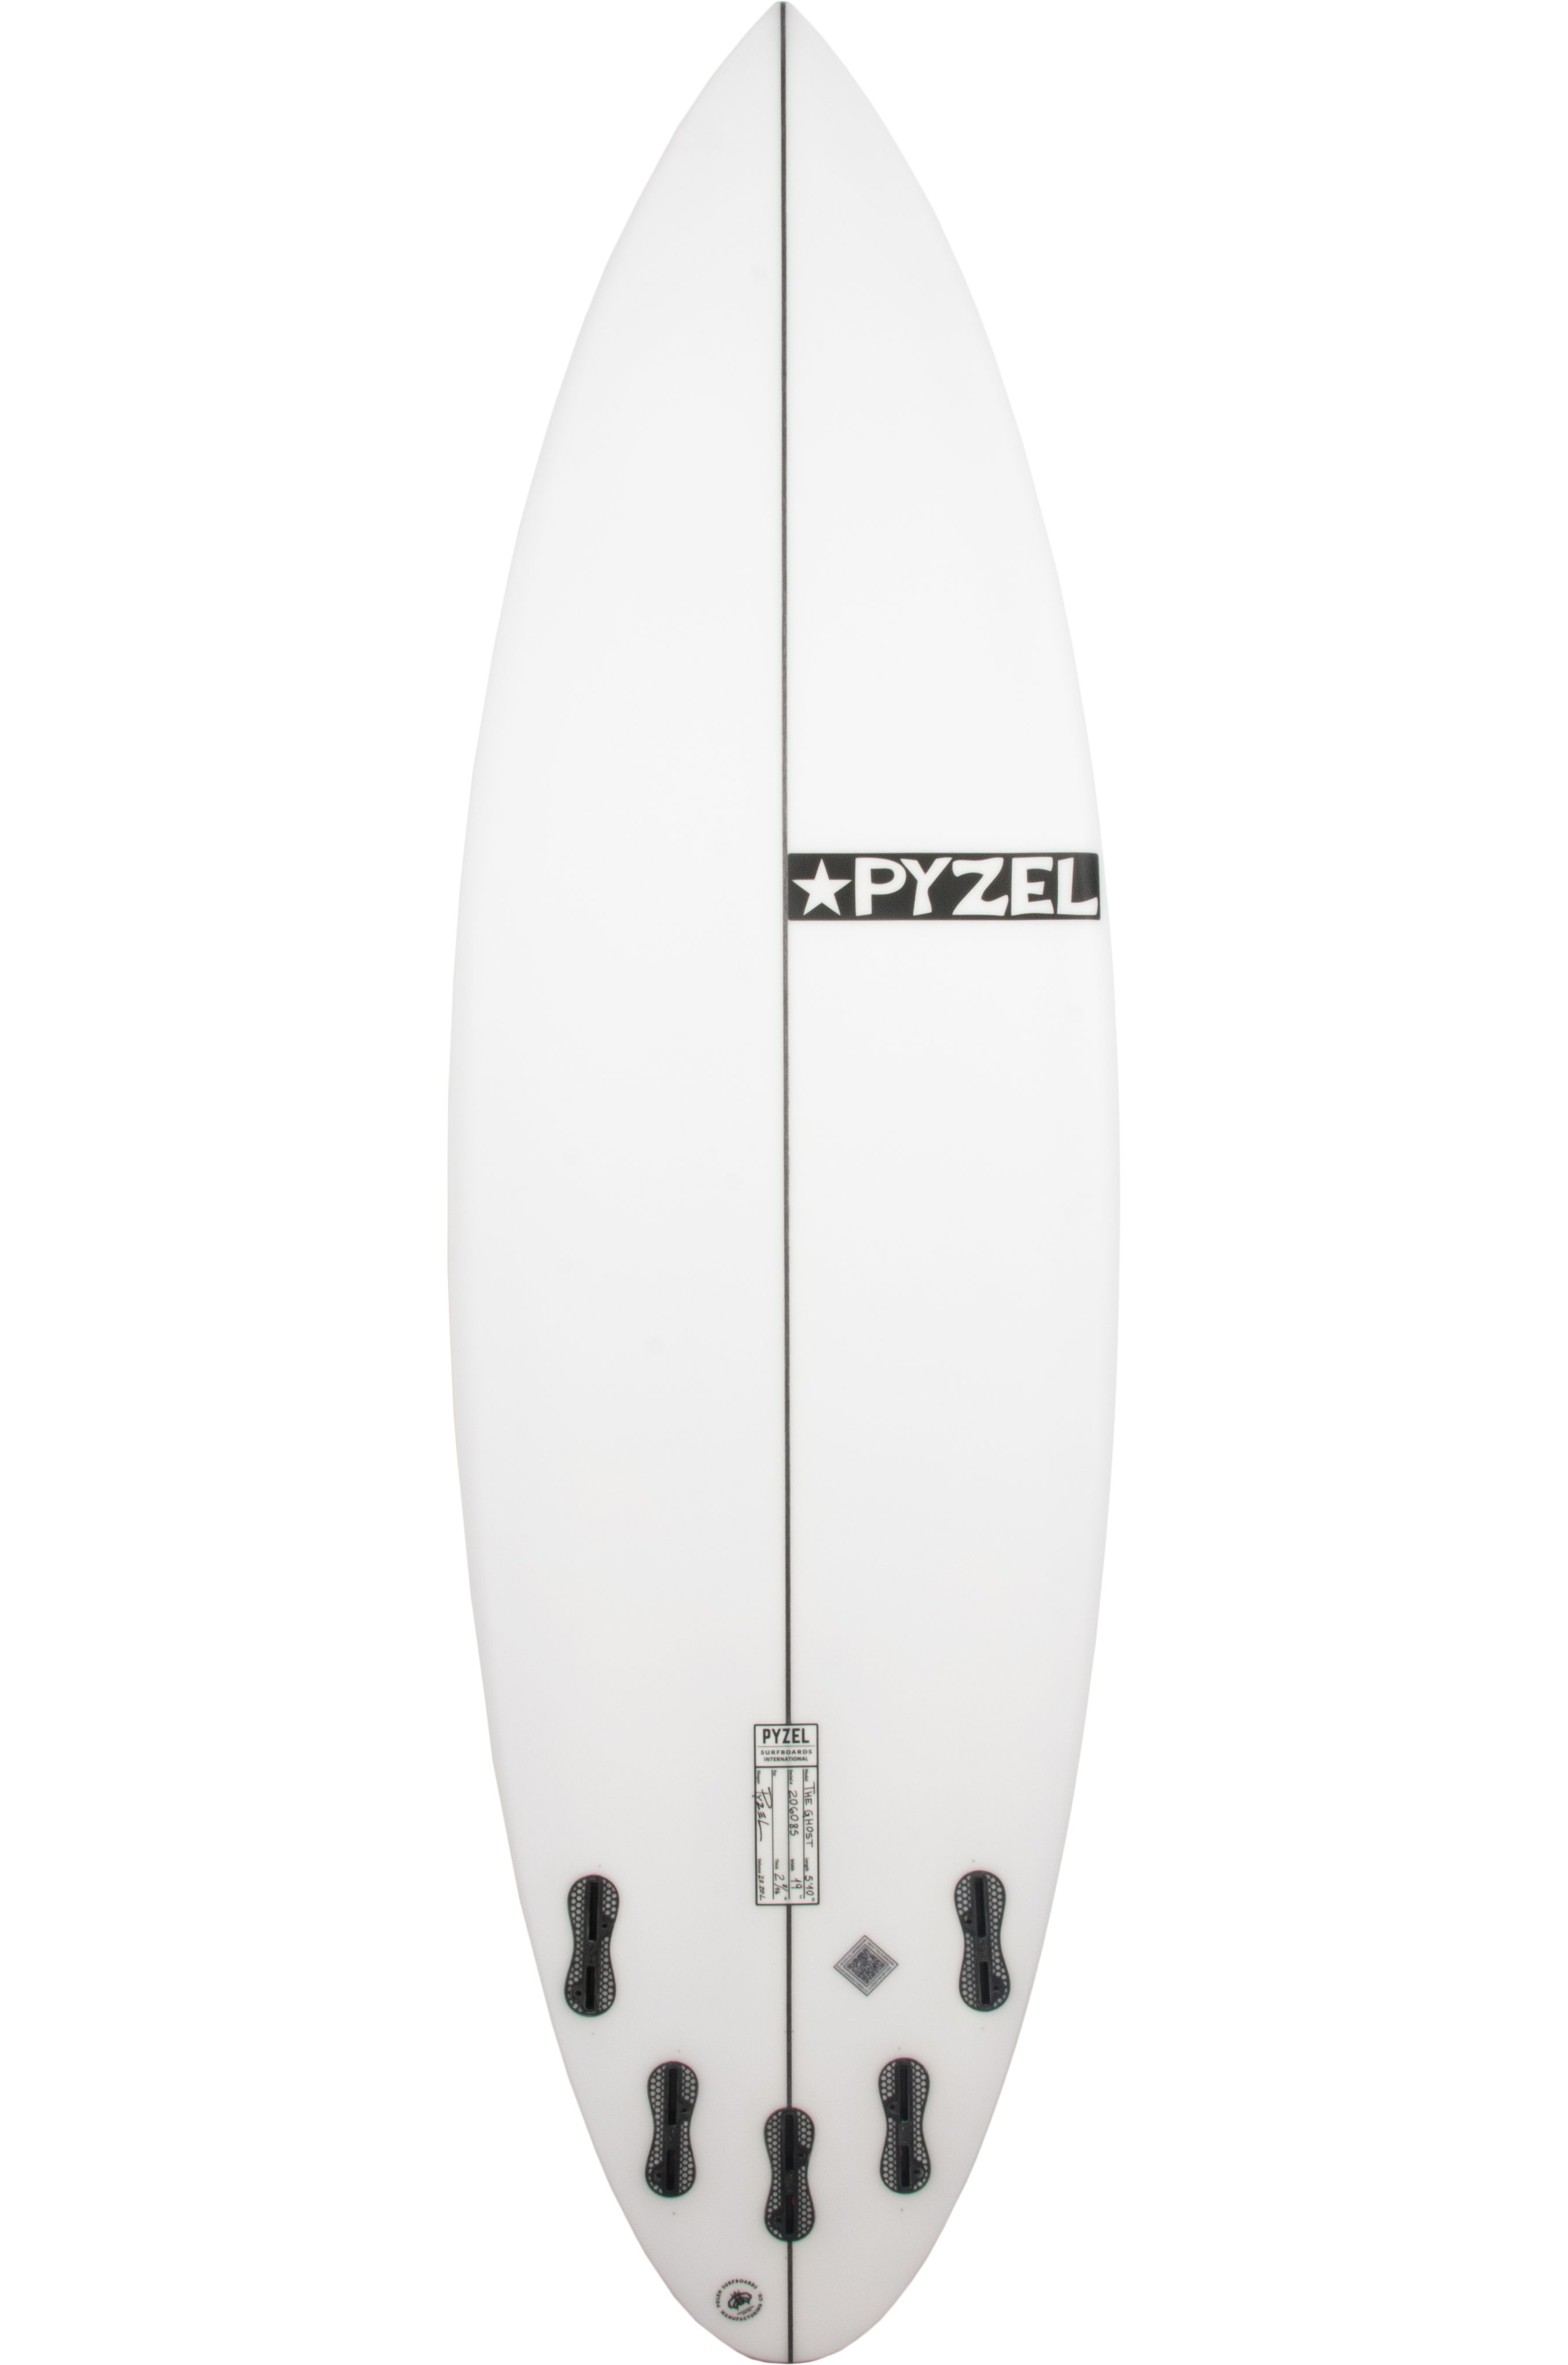 Prancha Surf Pyzel 6'2 GHOST Round Pin Tail - White FCS II Multisystem 6ft2